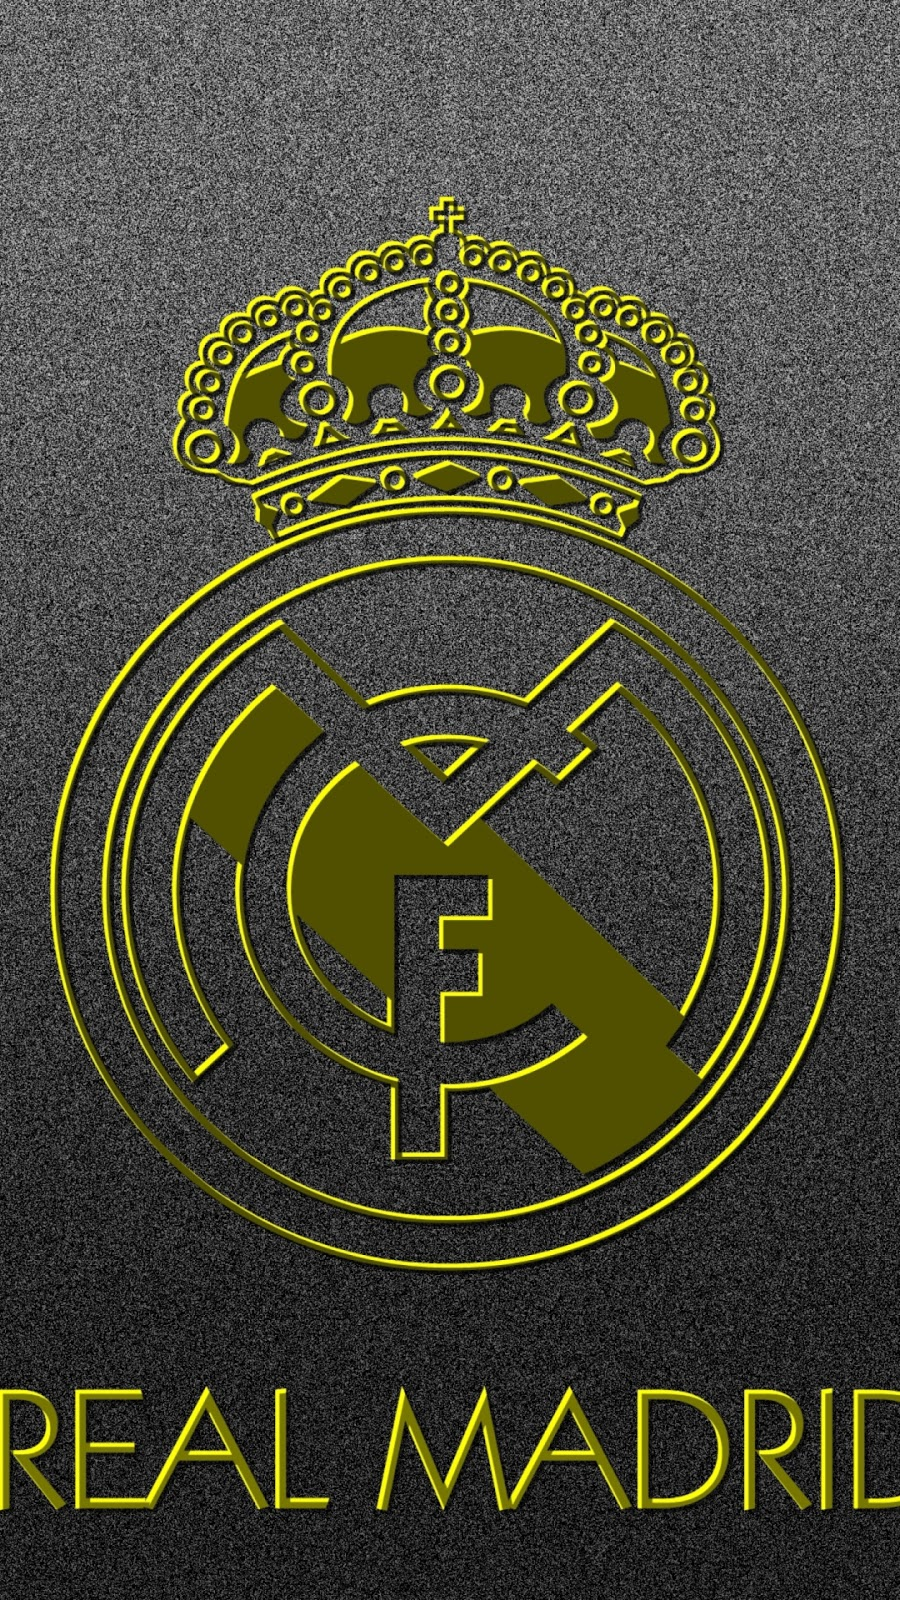 Real Madrid Wallpaper Whatsapp Dp Bbm